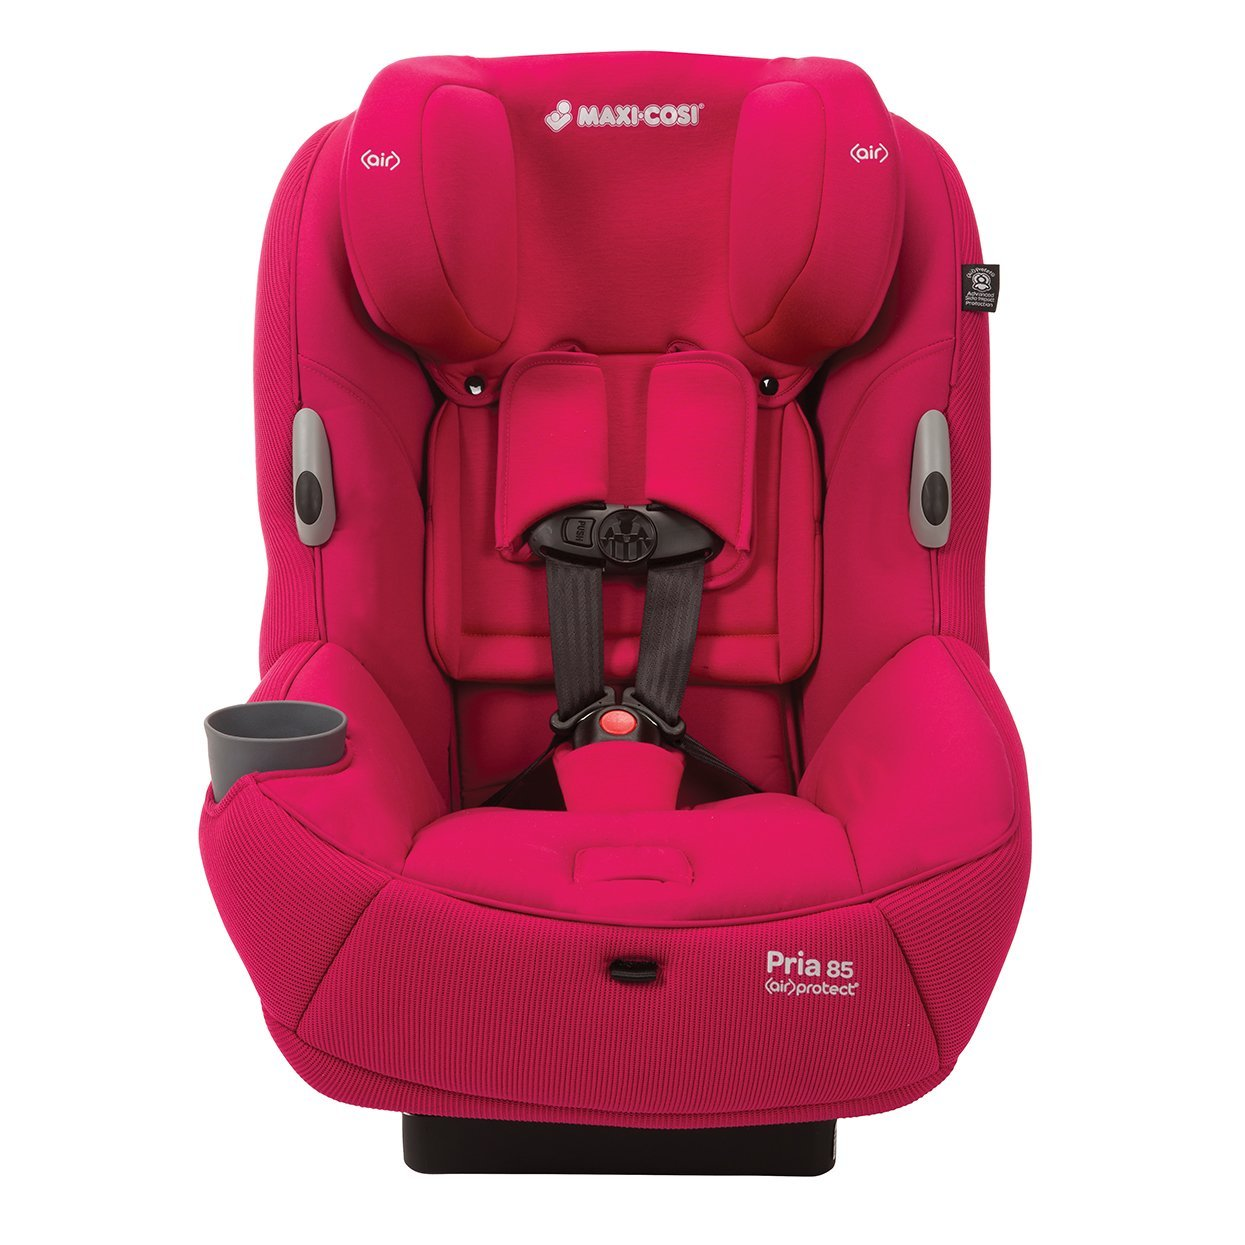 Maxi-Cosi Pria 85 Special Edition Ribble Collection Convertible Car Seat Havana Pink by Maxi-Cosi